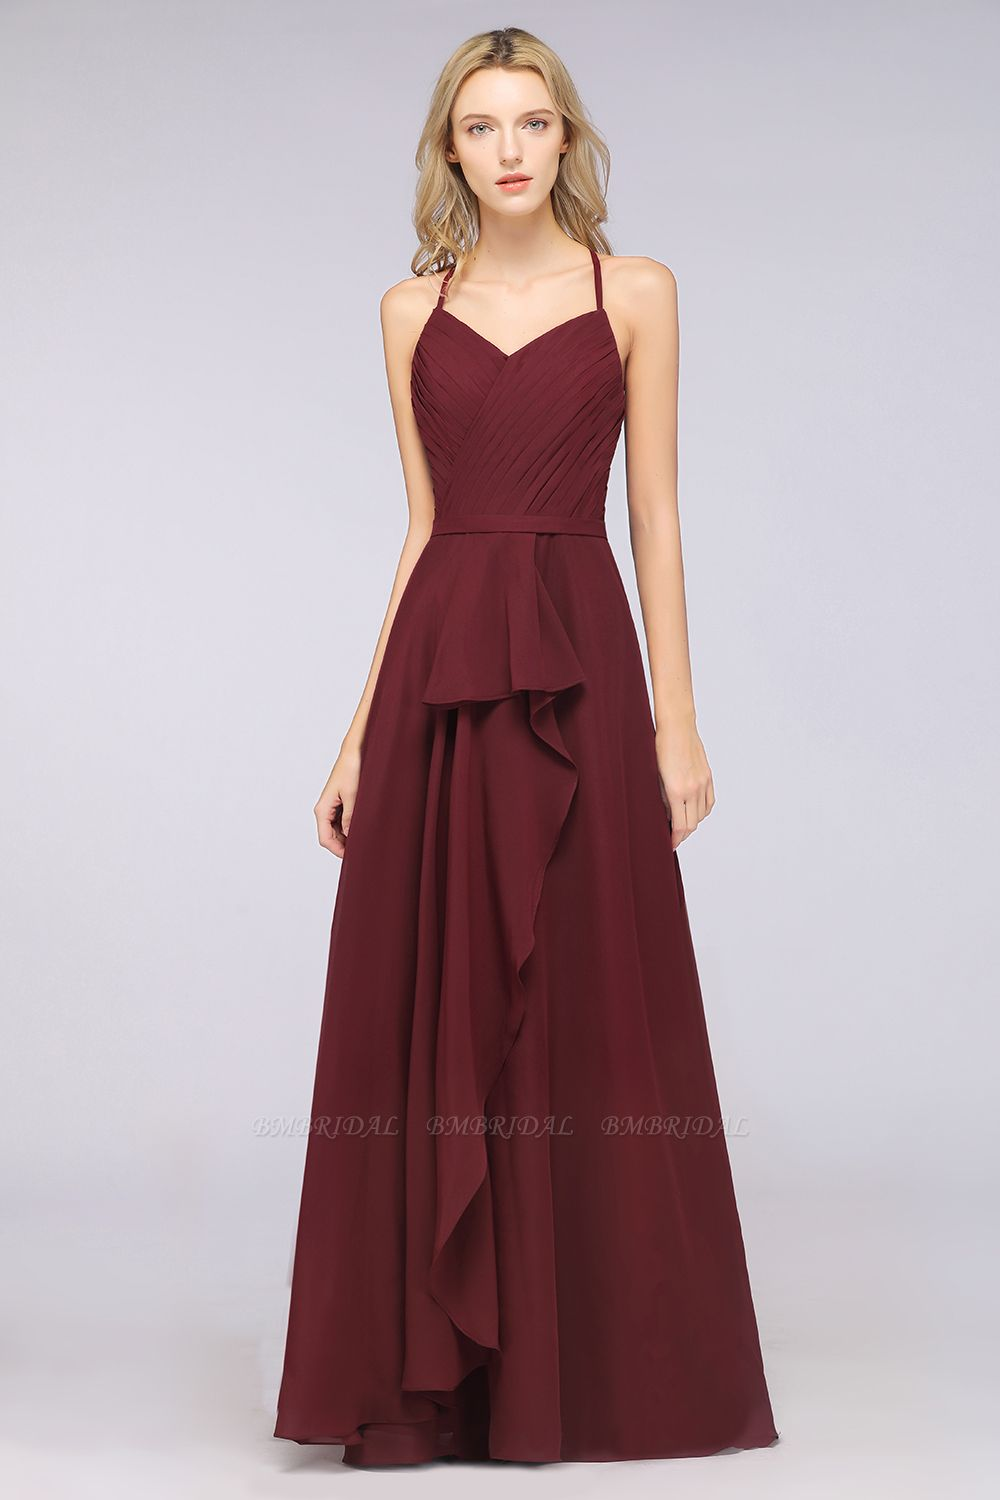 Affordable Chiffon Halter V-Neck Ruffle Burgundy Bridesmaid Dresses